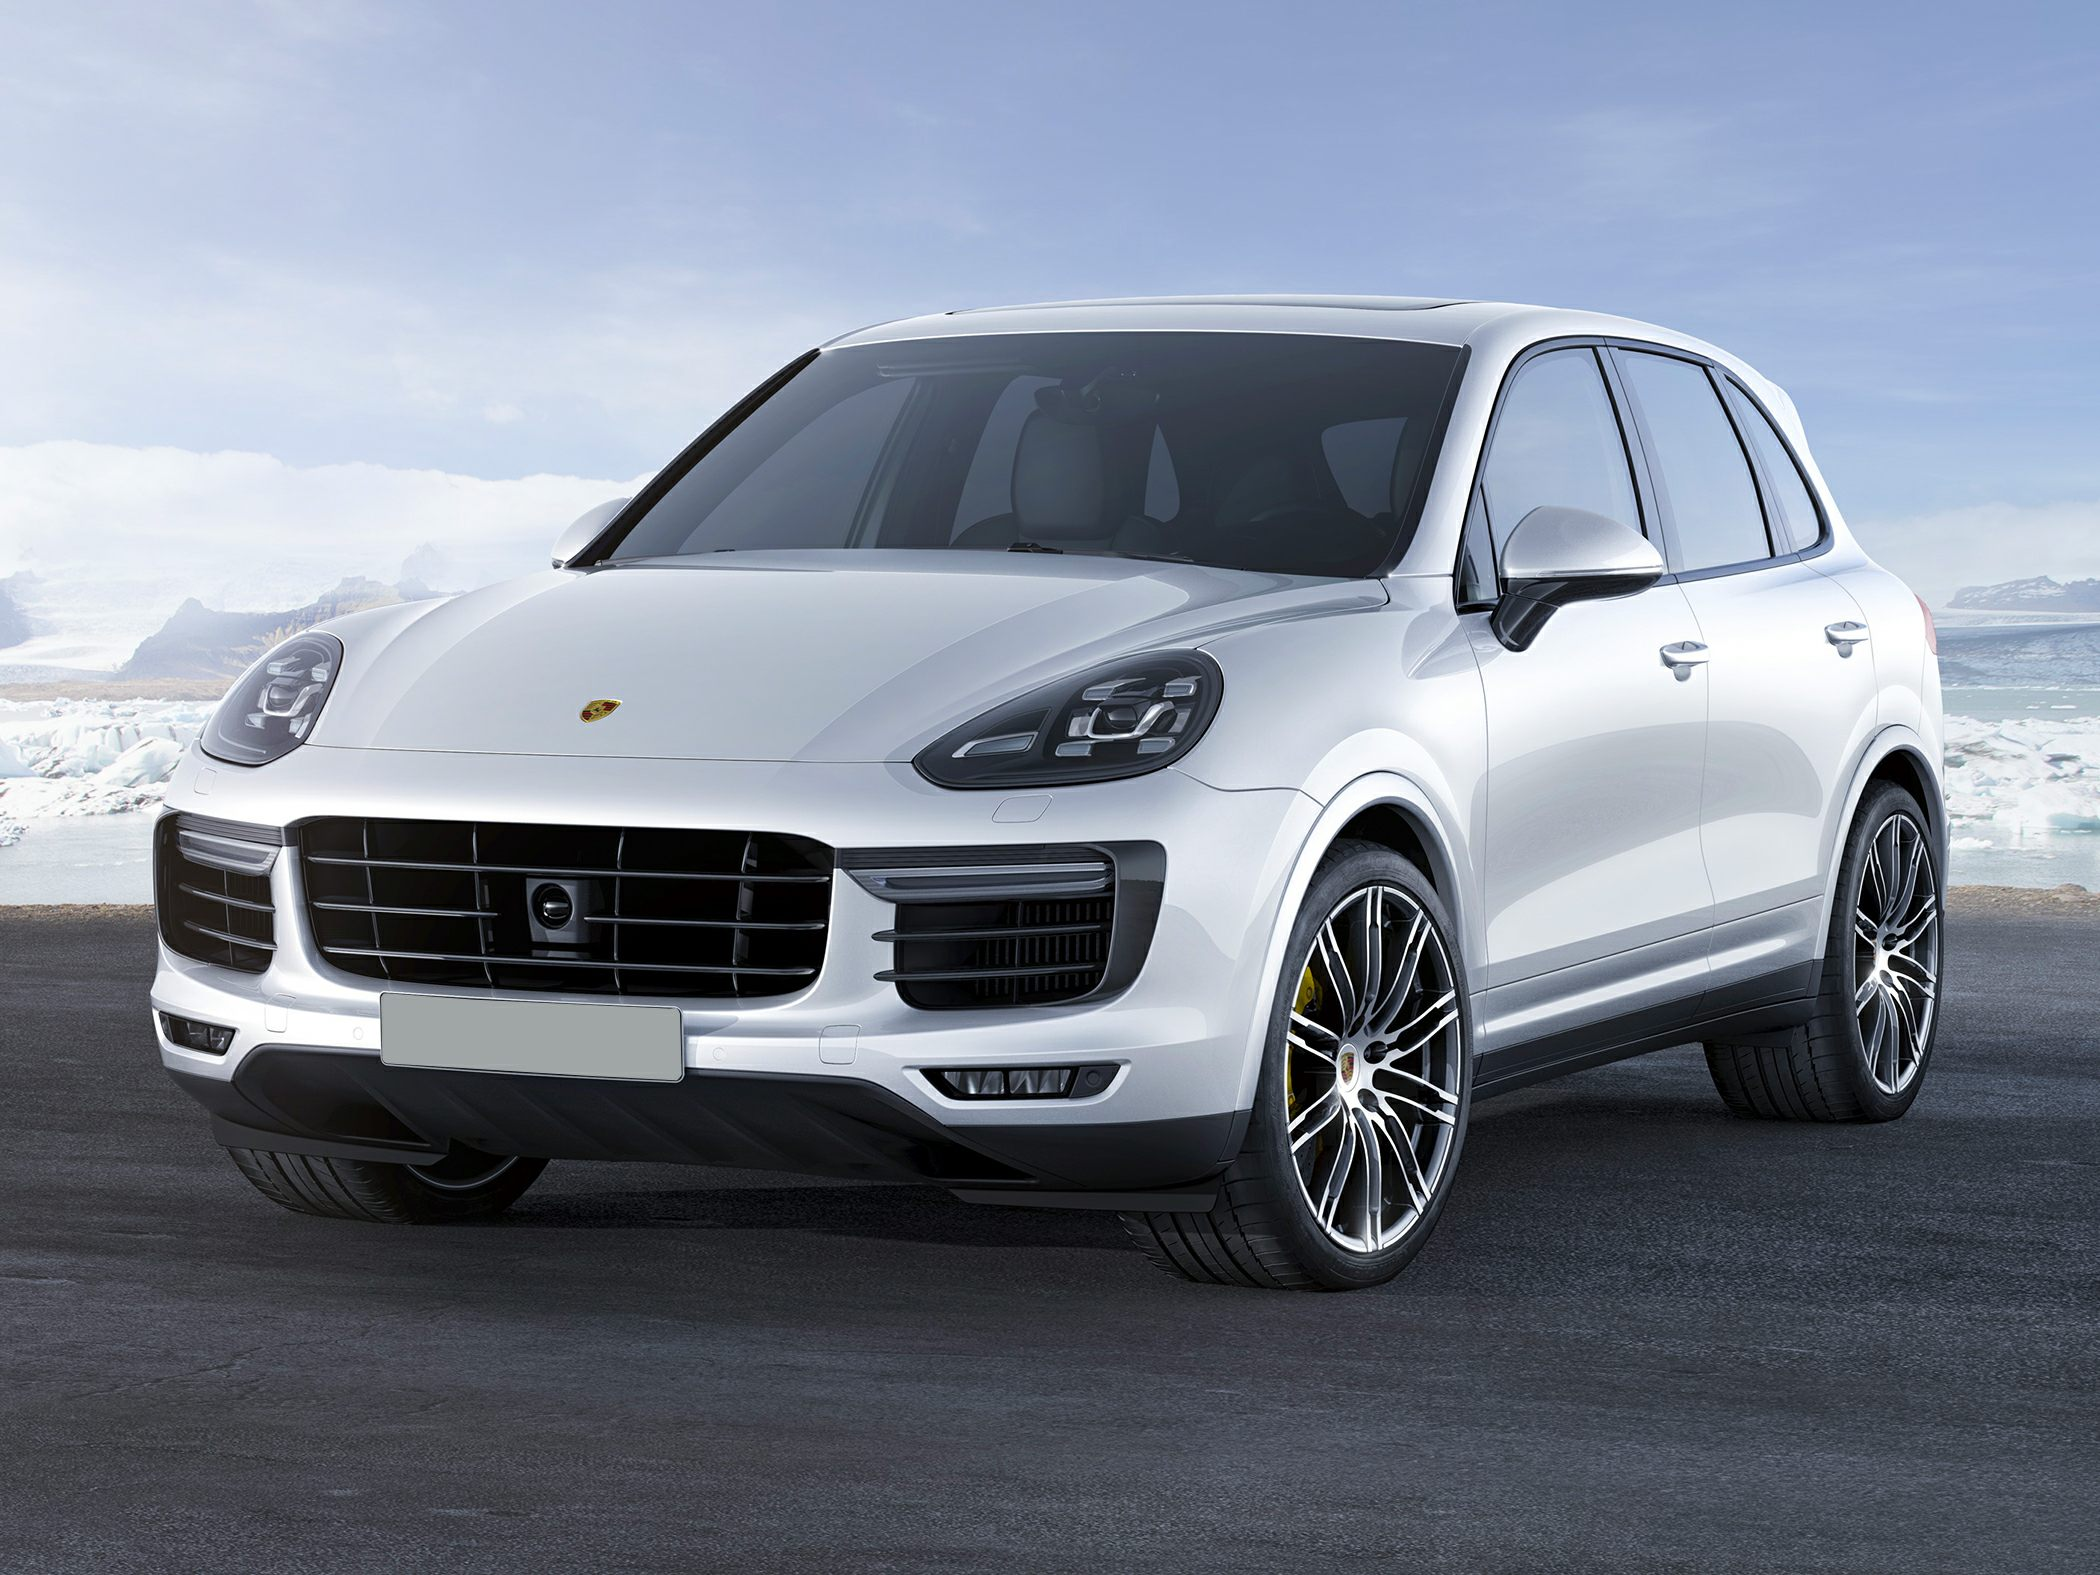 2018 porsche cayenne turbo s 4dr all wheel drive pricing and options